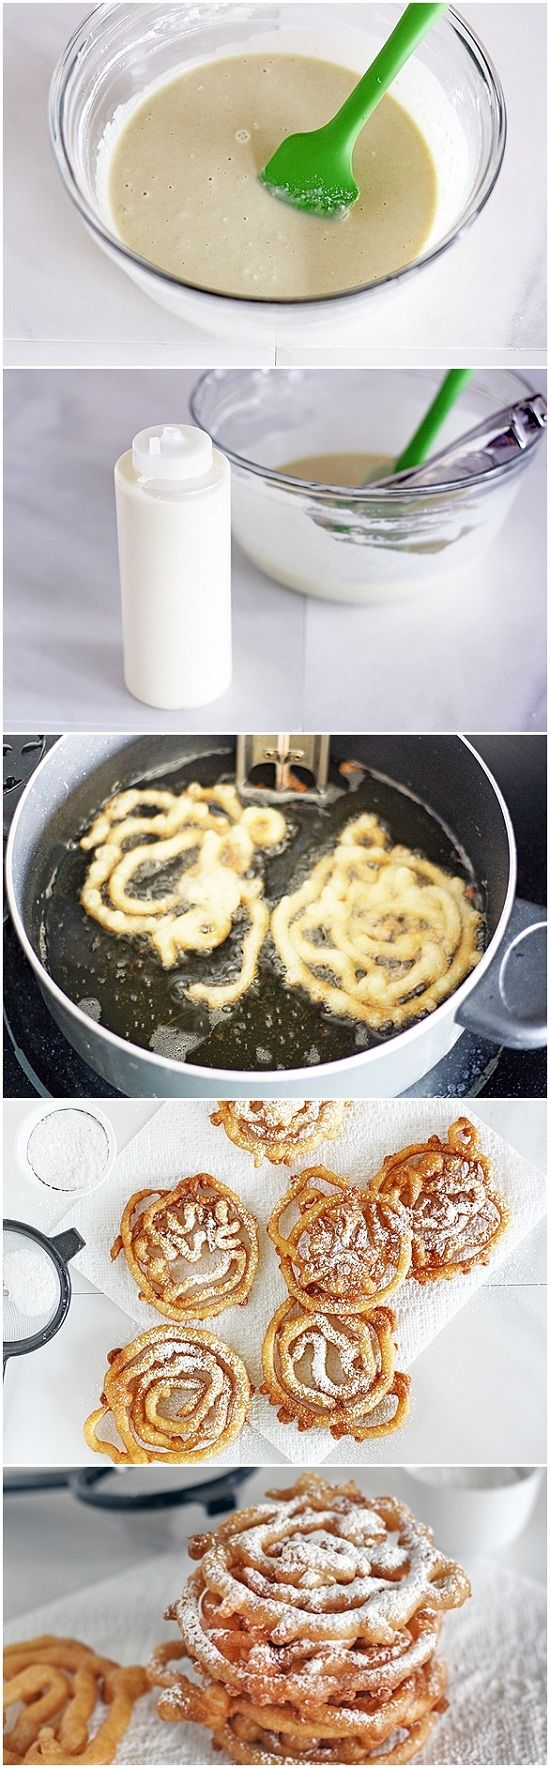 DIY Mini Funnel Cakes. Omg. I shouldn't know how to make funnel cake..this is gonna be one delicious mistake!